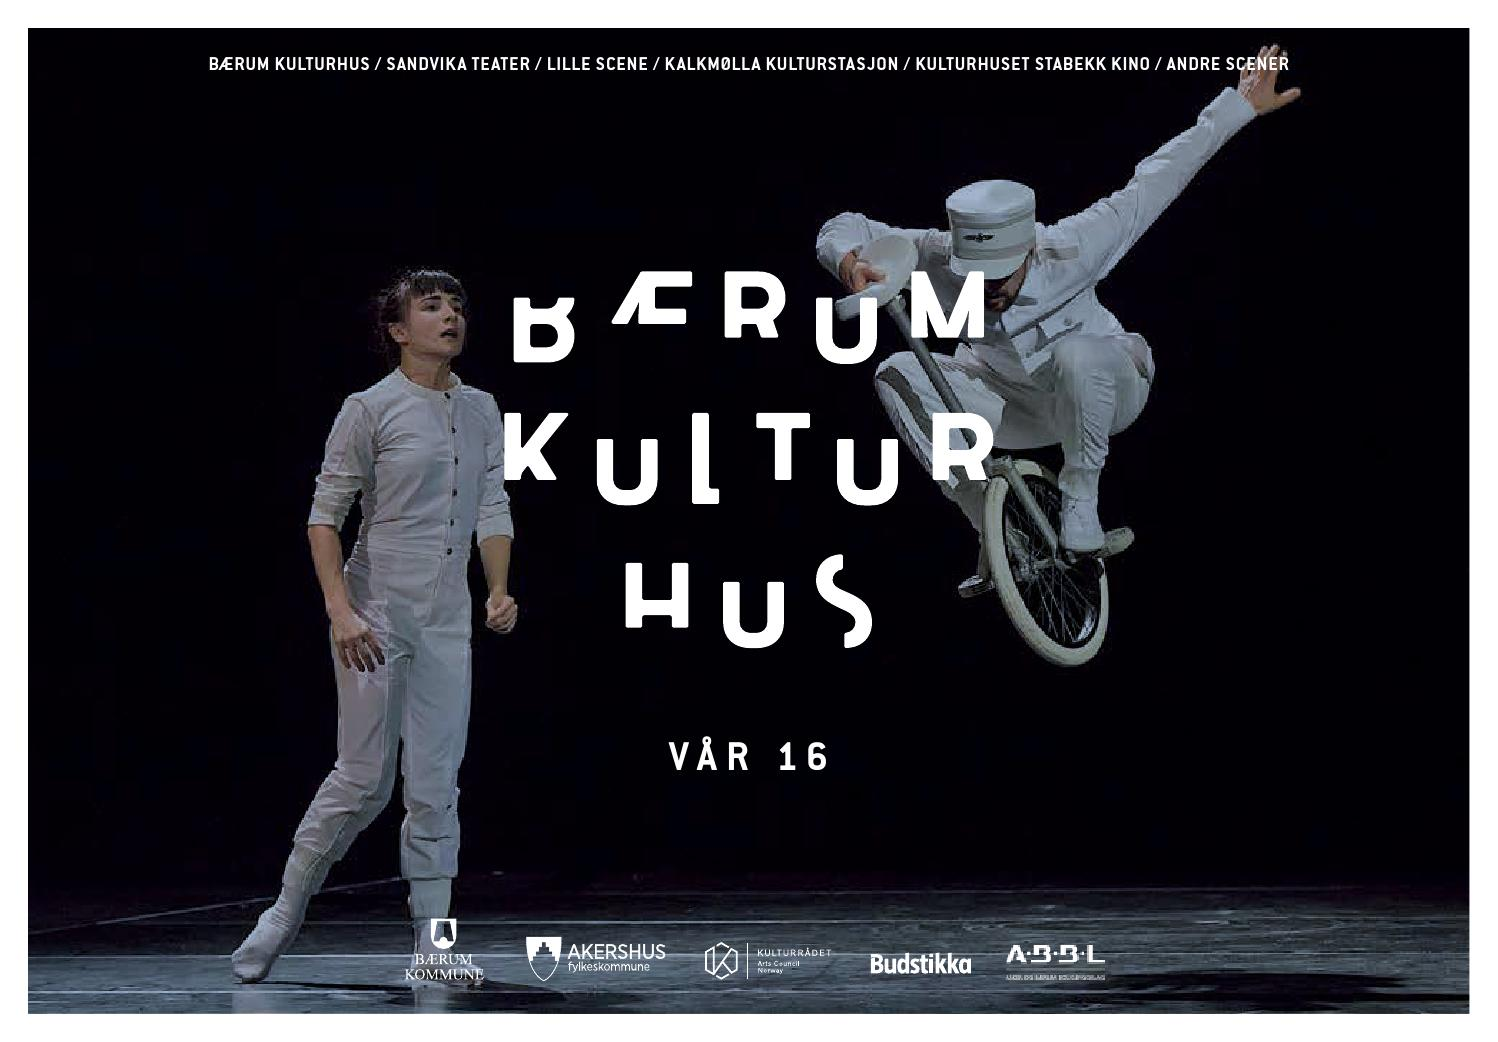 Bærum kulturhus program